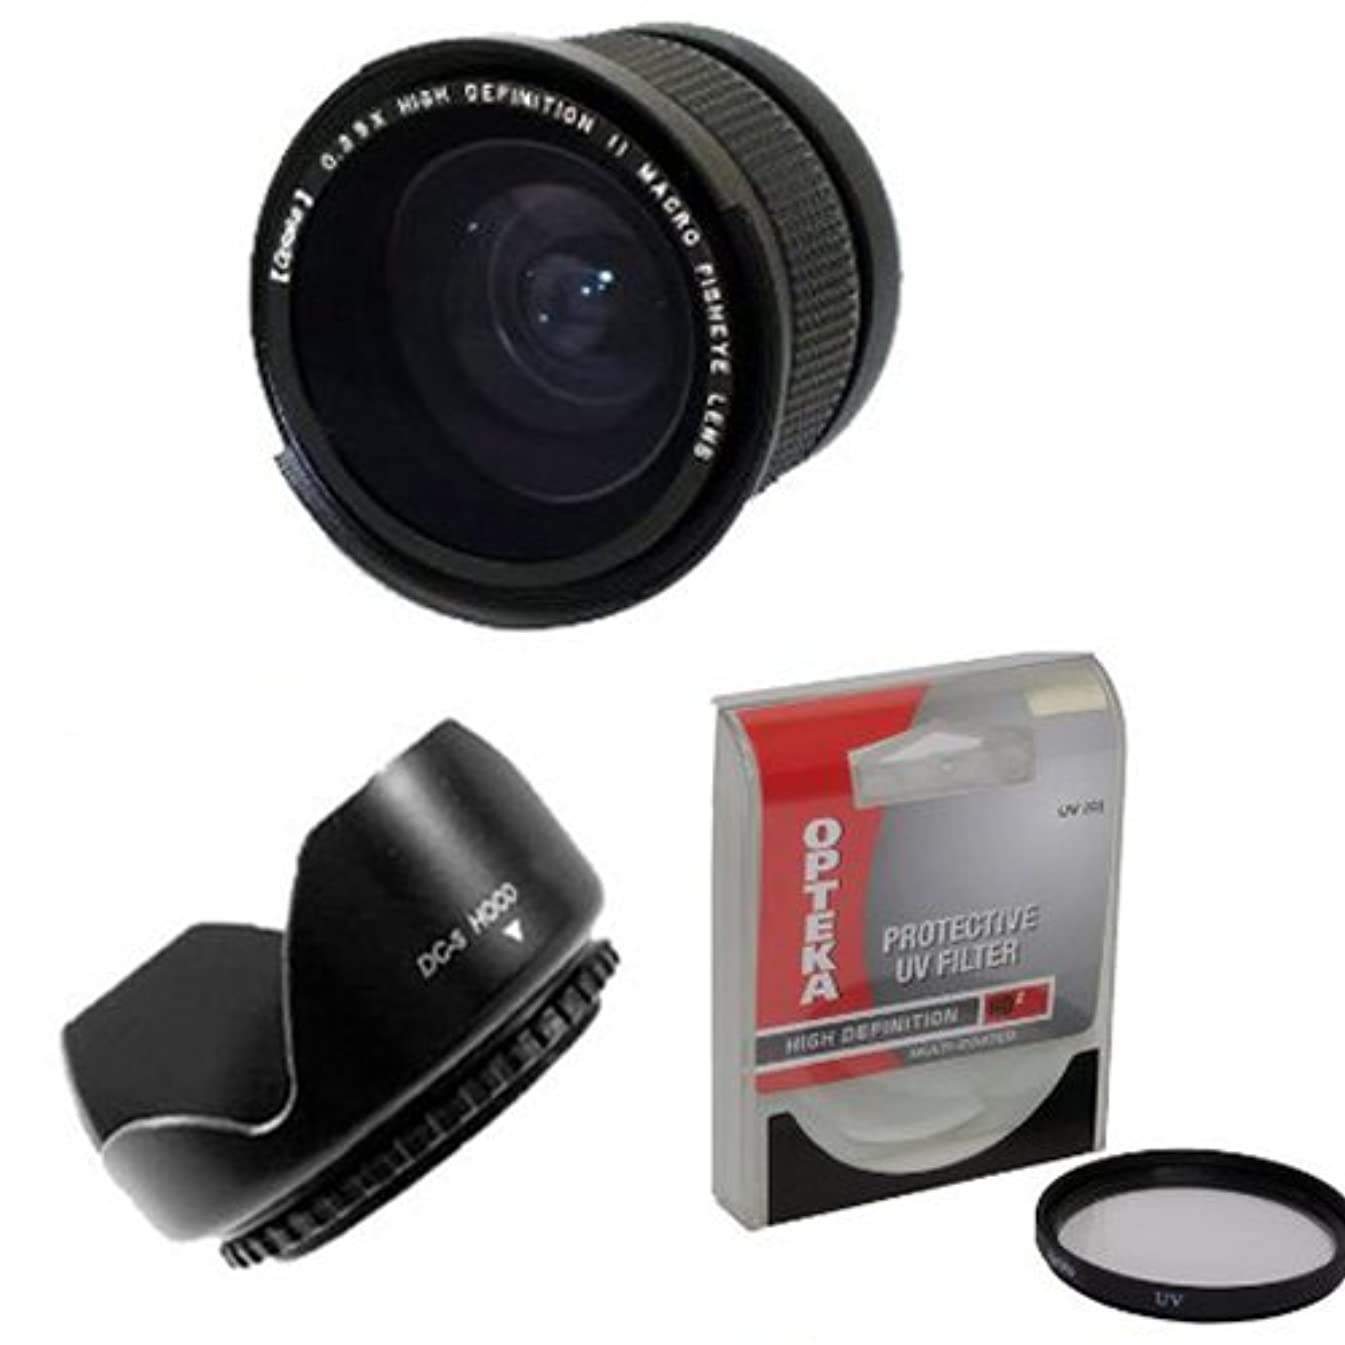 Opteka .35x High Definition II Super Wide Angle Panoramic Macro Fisheye Lens for Canon PowerShot SX40 HS SX30 SX20 SX10 SX1 Digital Camera With Bonus 67MM High Definition II UV (0) Ultra Violet Haze Multi-Coated Glass Filter Includes Special FA-DC67A 67MM Adapter Ring Photo Print !